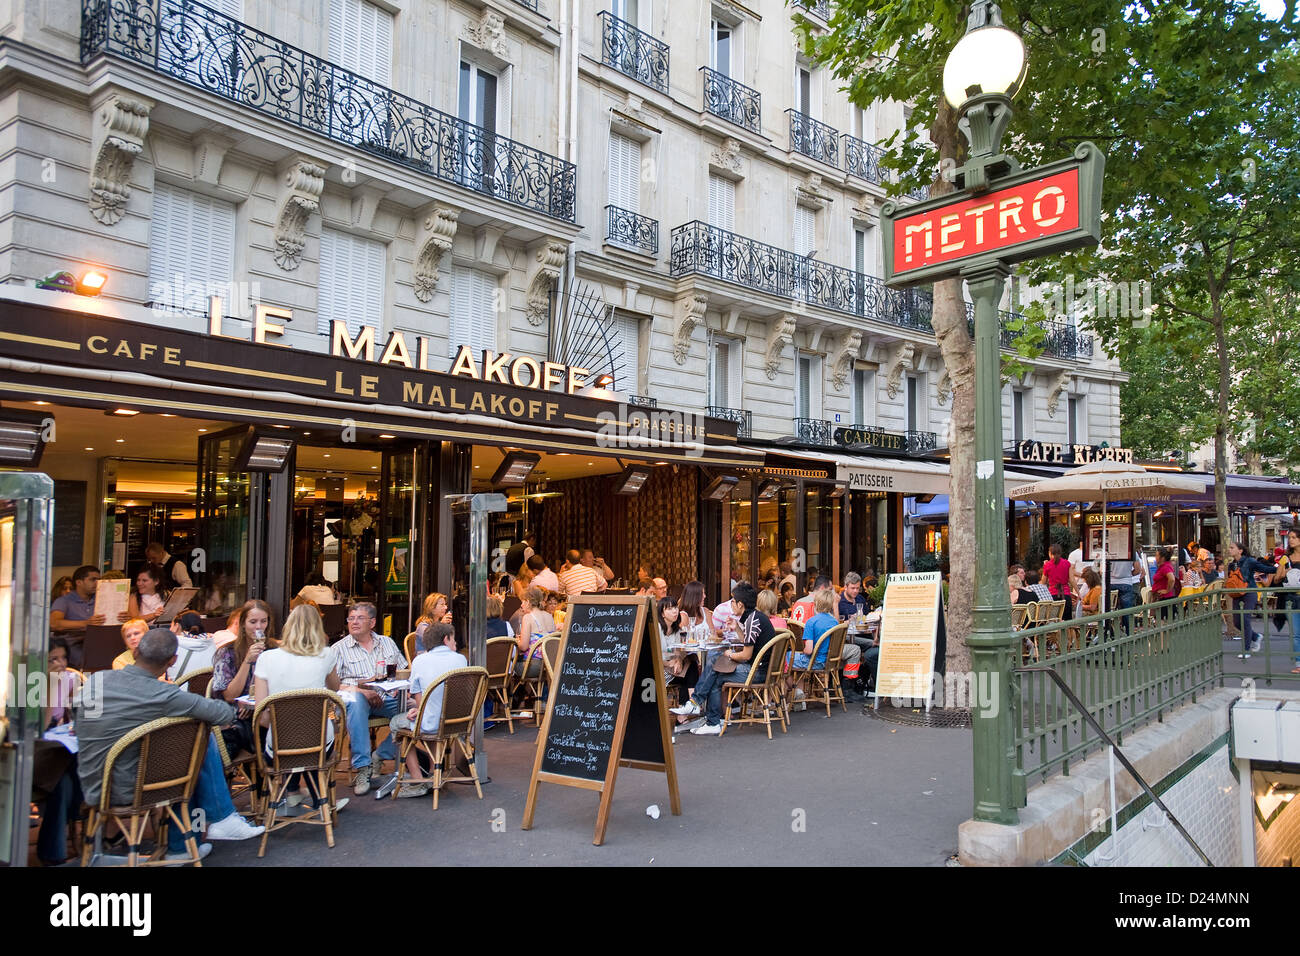 Paris France The Cafe Le Malakoff From Metro Station